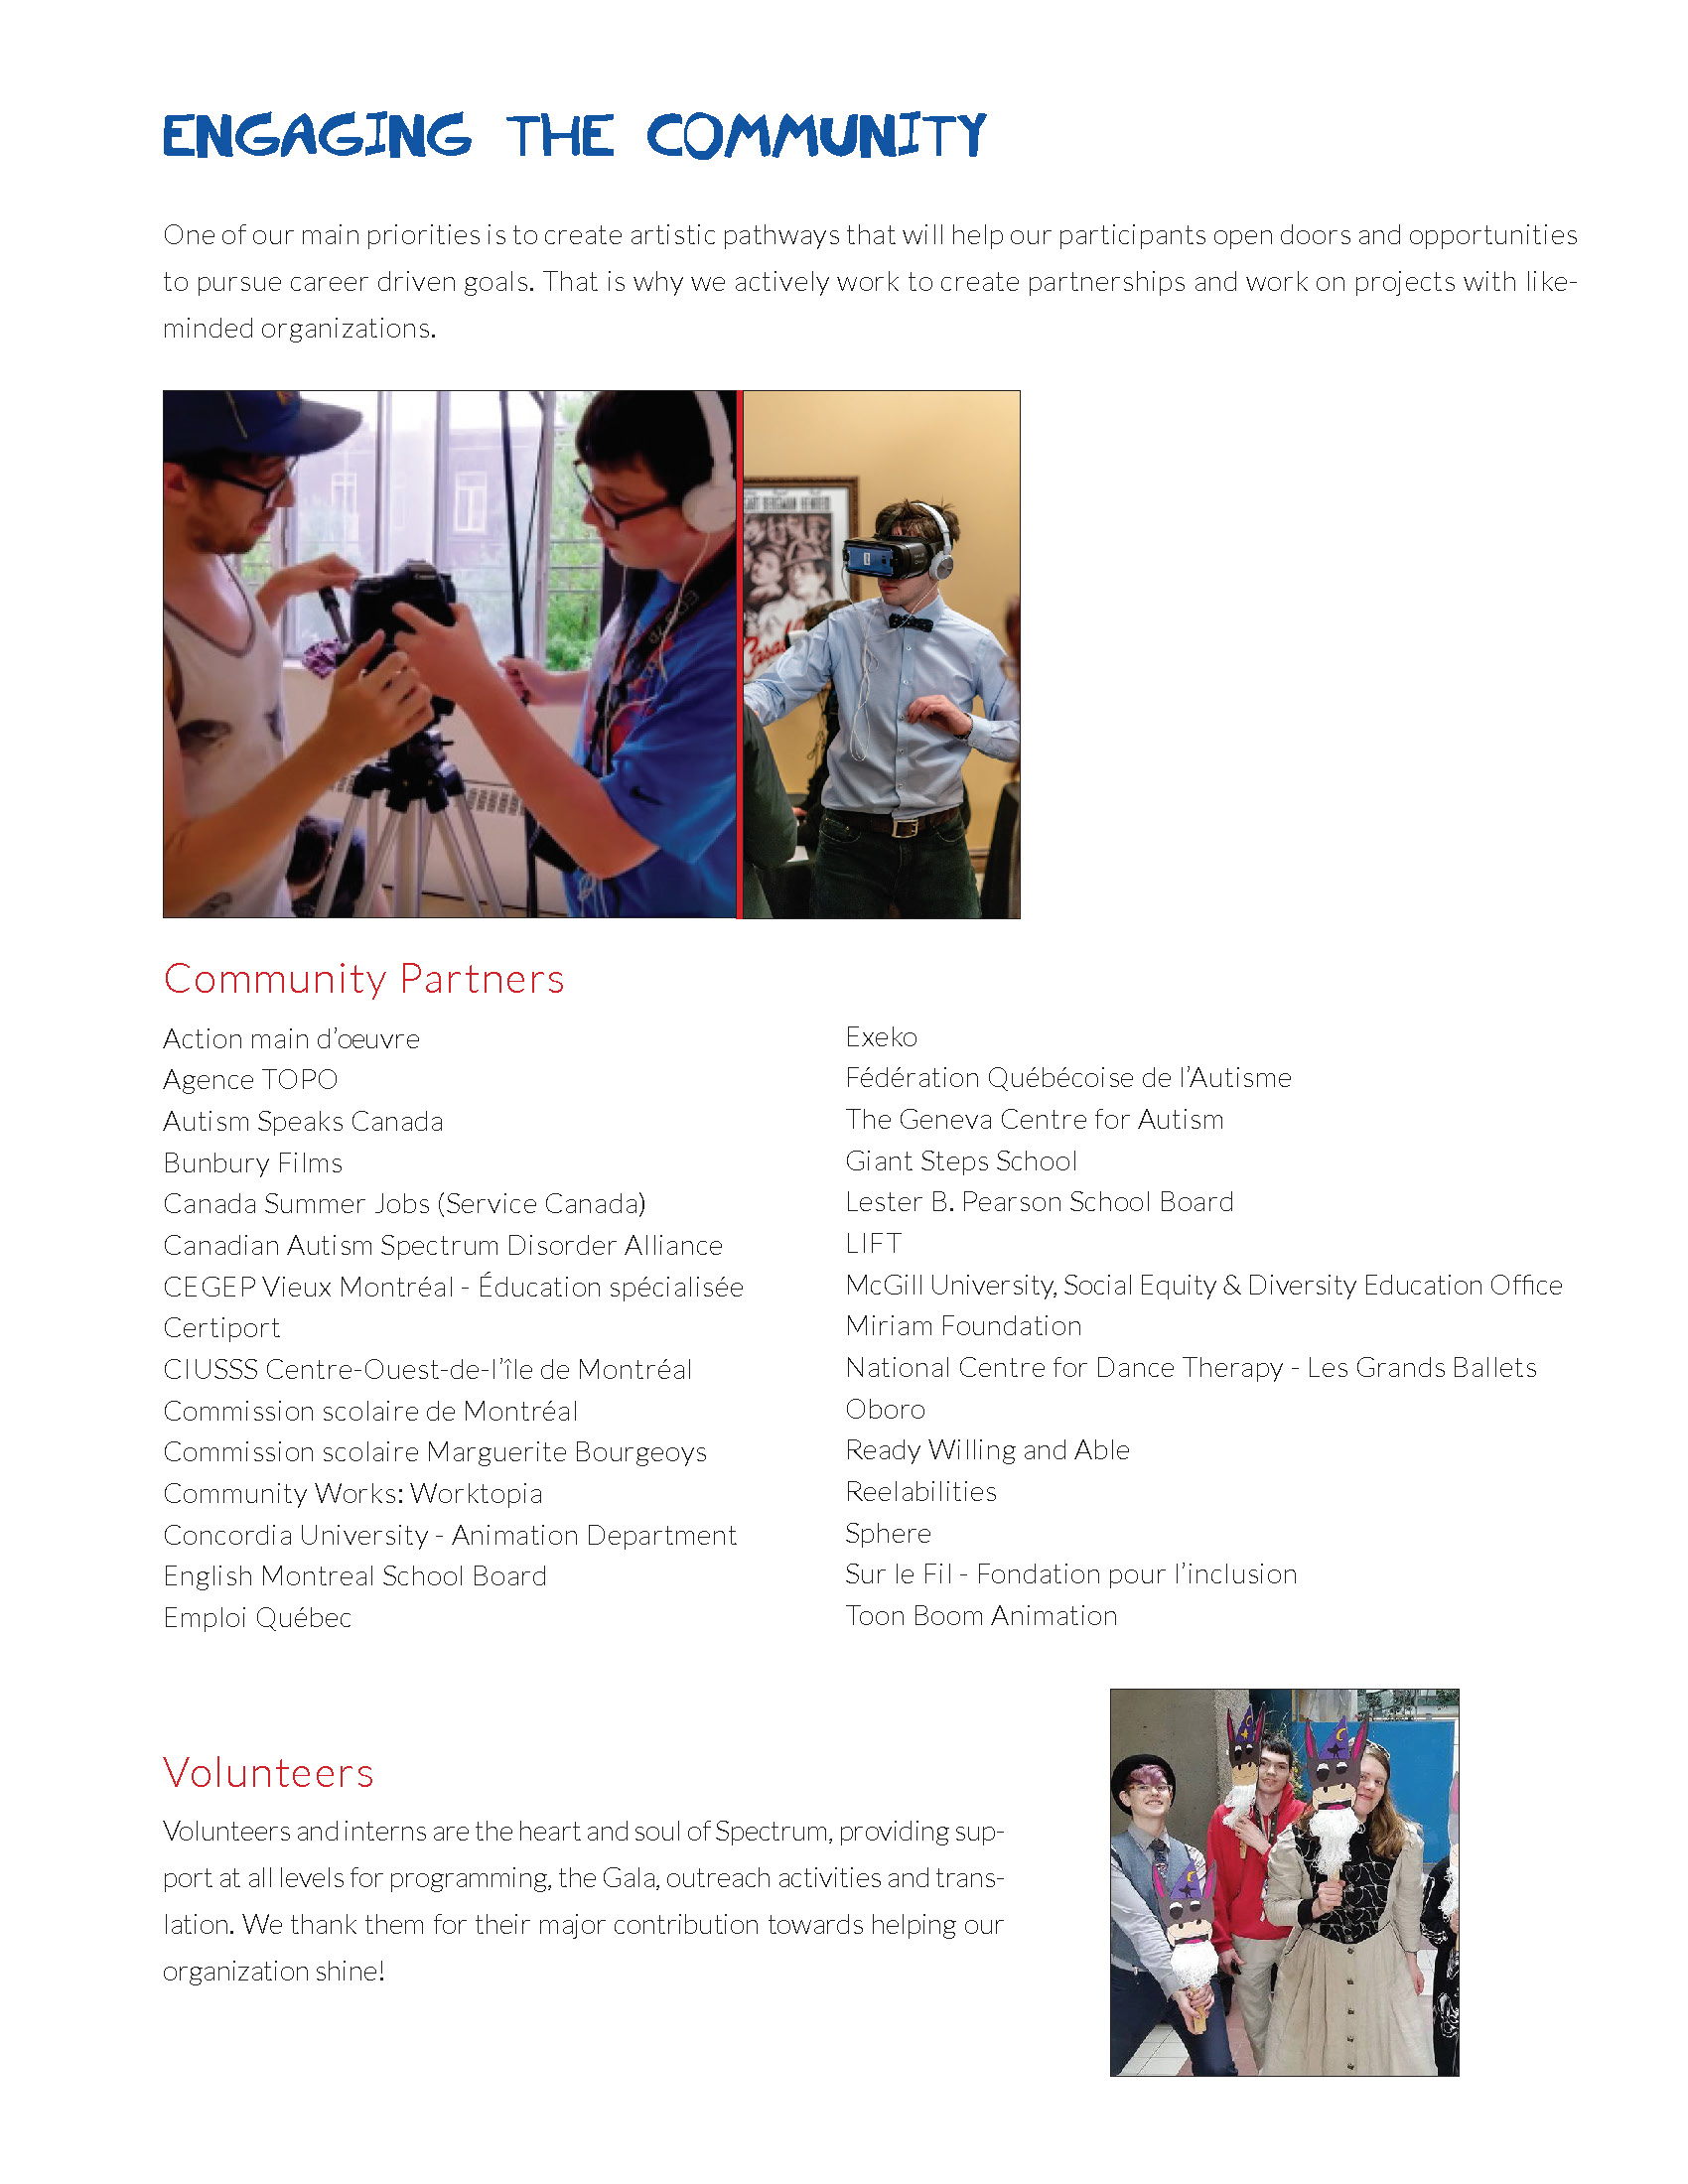 ANNUAL REPORT 2018 _OFFICIAL_Page_10.jpg